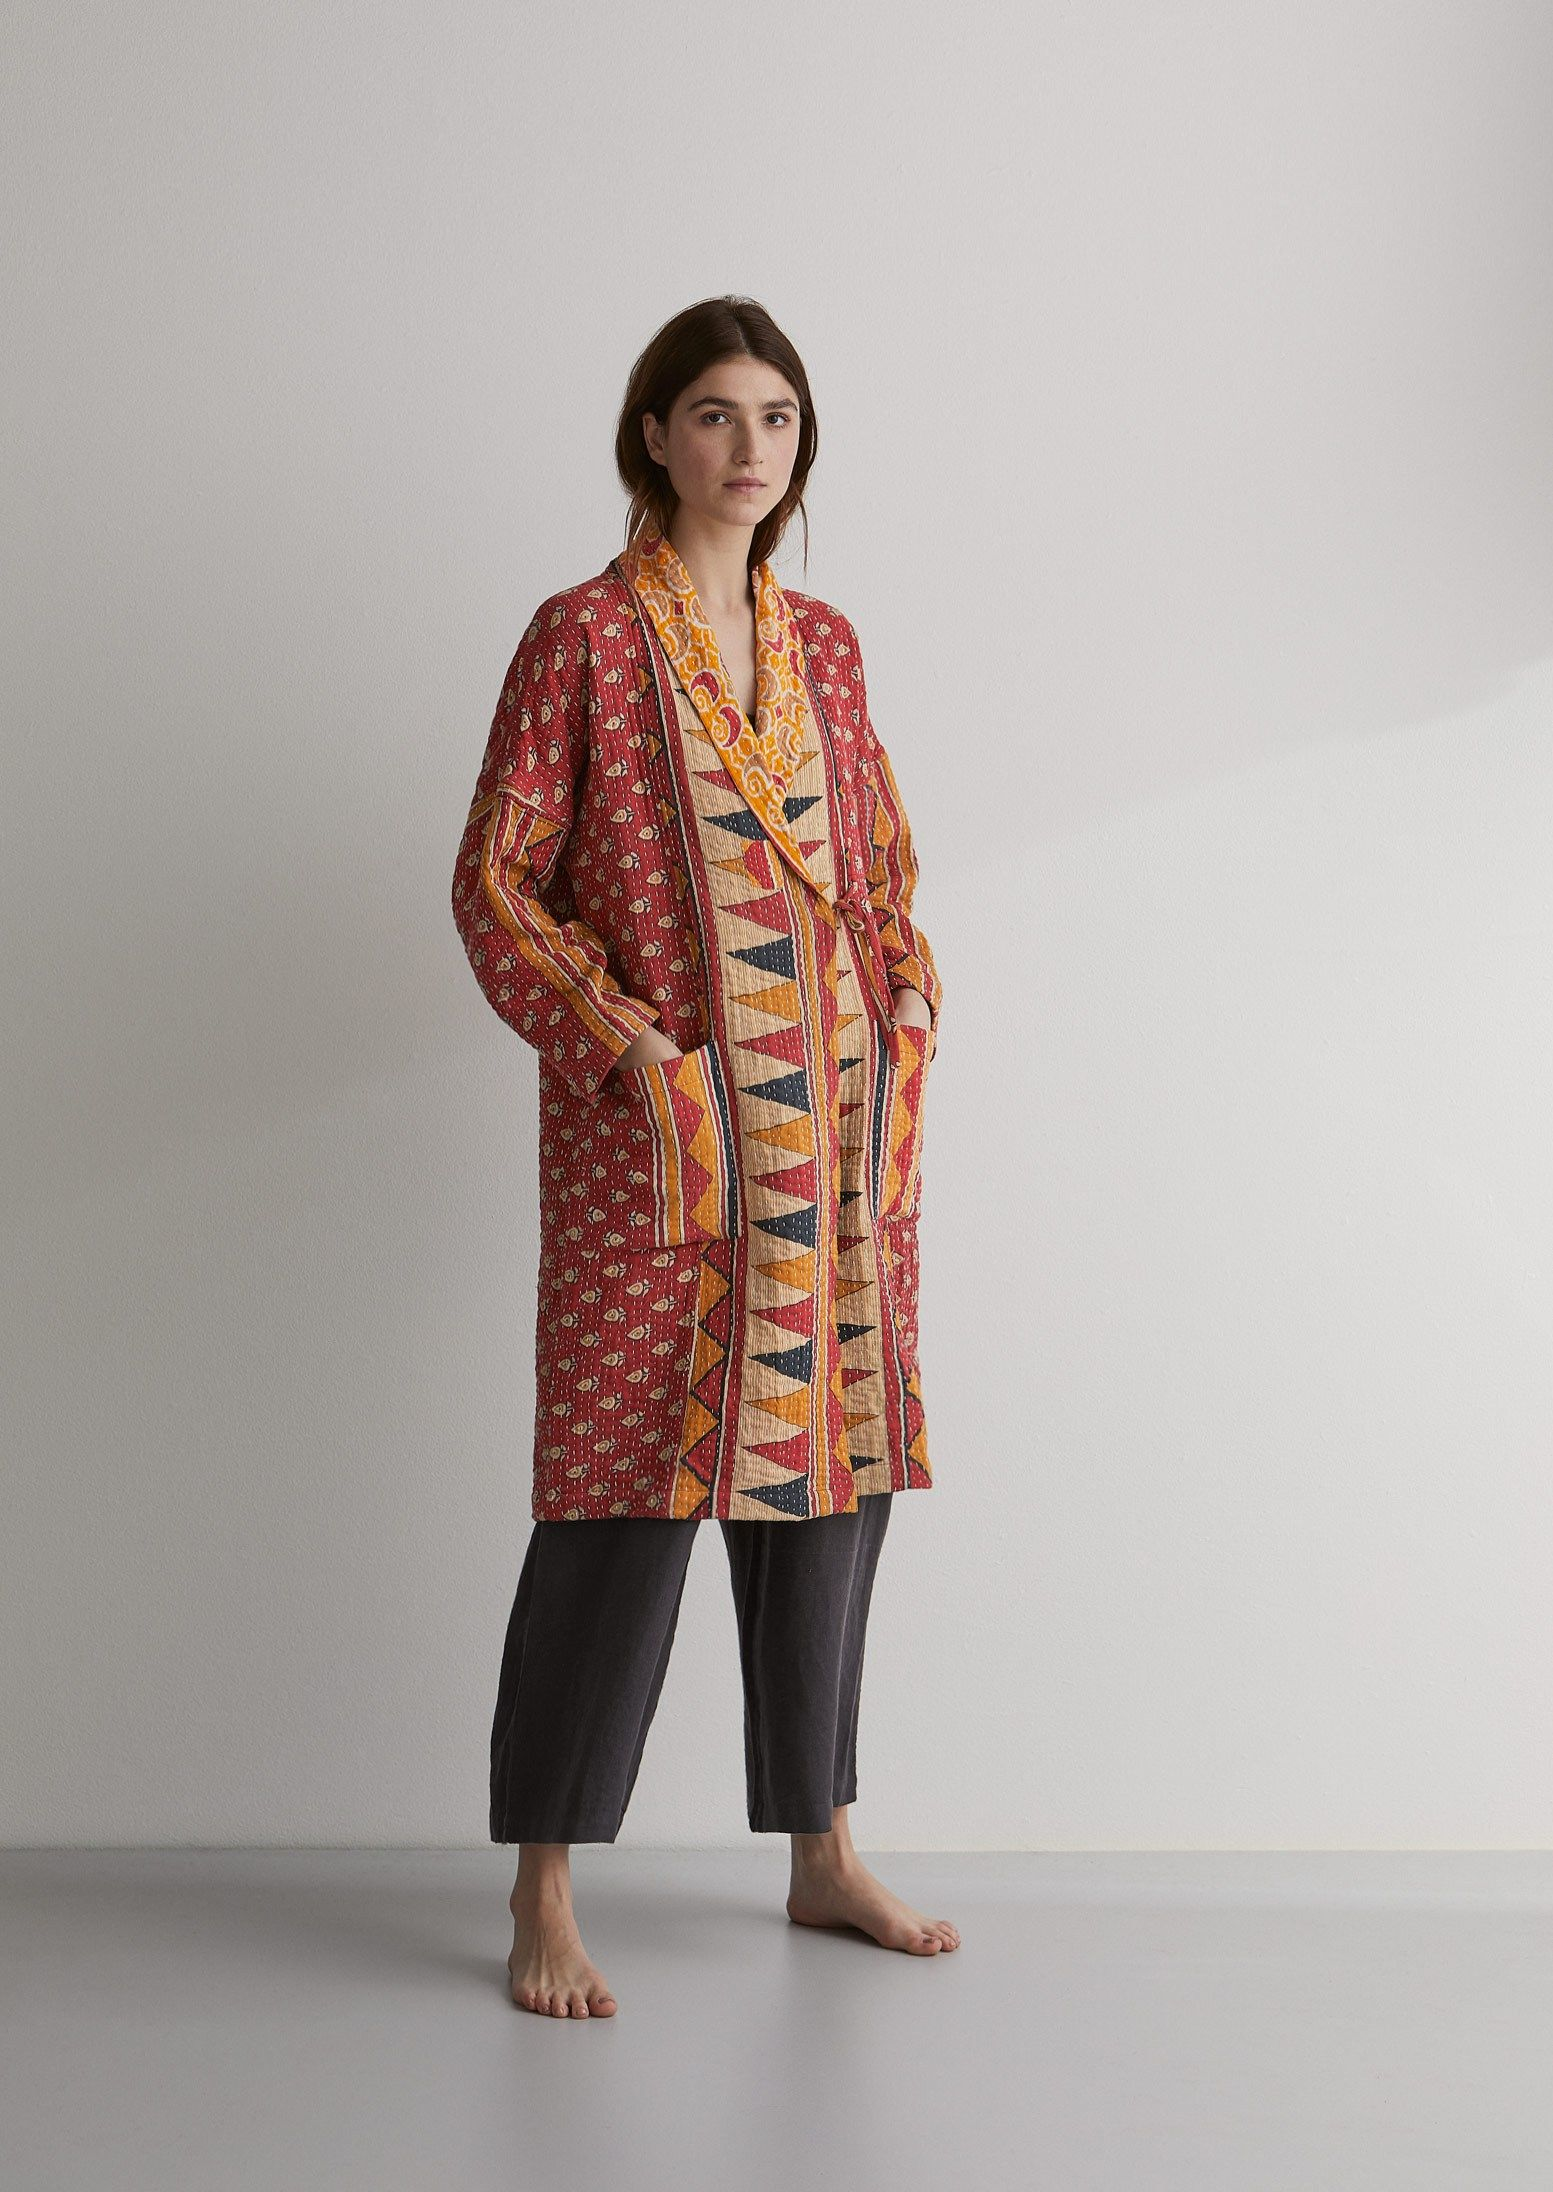 da2e1824cc Kantha Quilted Coat in 2019 | Things I Love | Kantha quilt ...